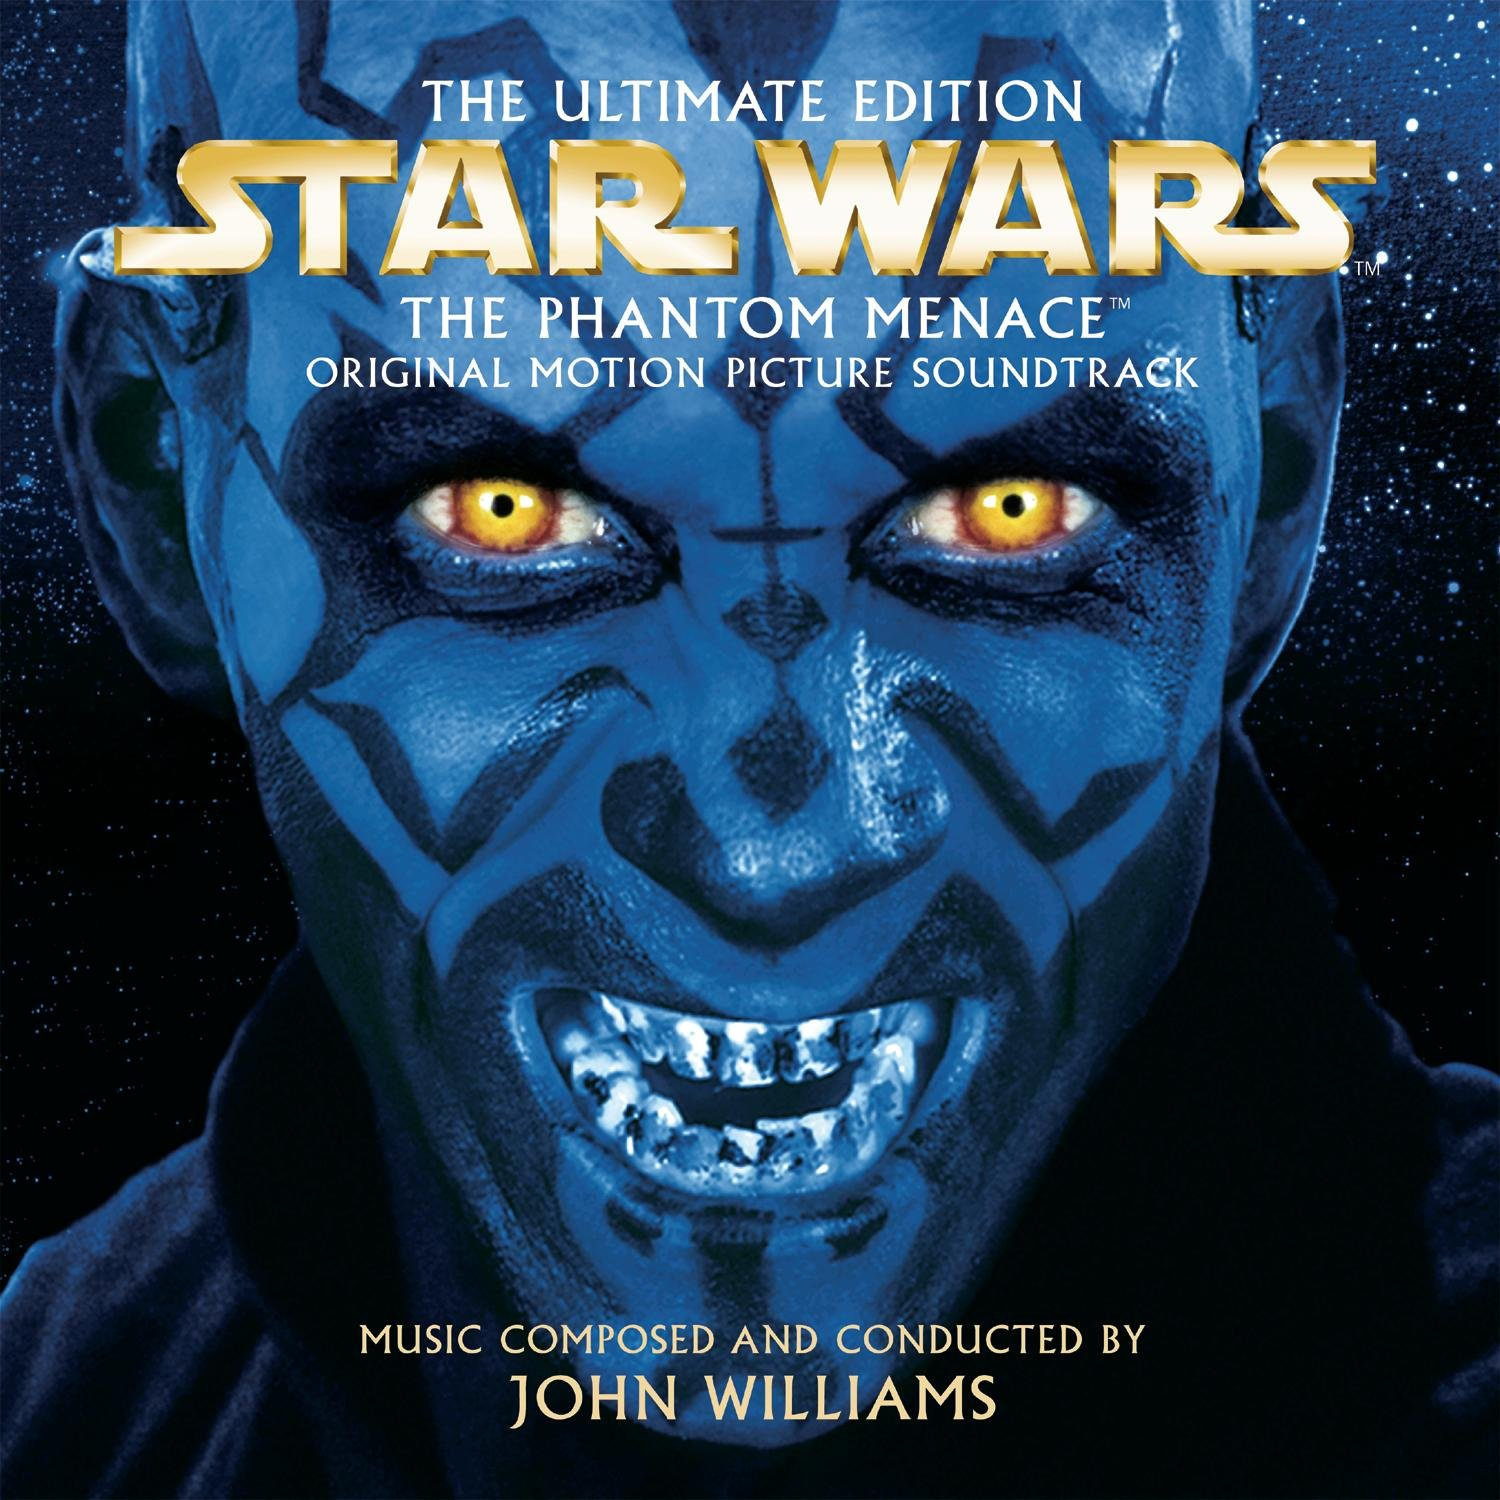 Star wars: episode i – the phantom menace (soundtrack) wikivisually.